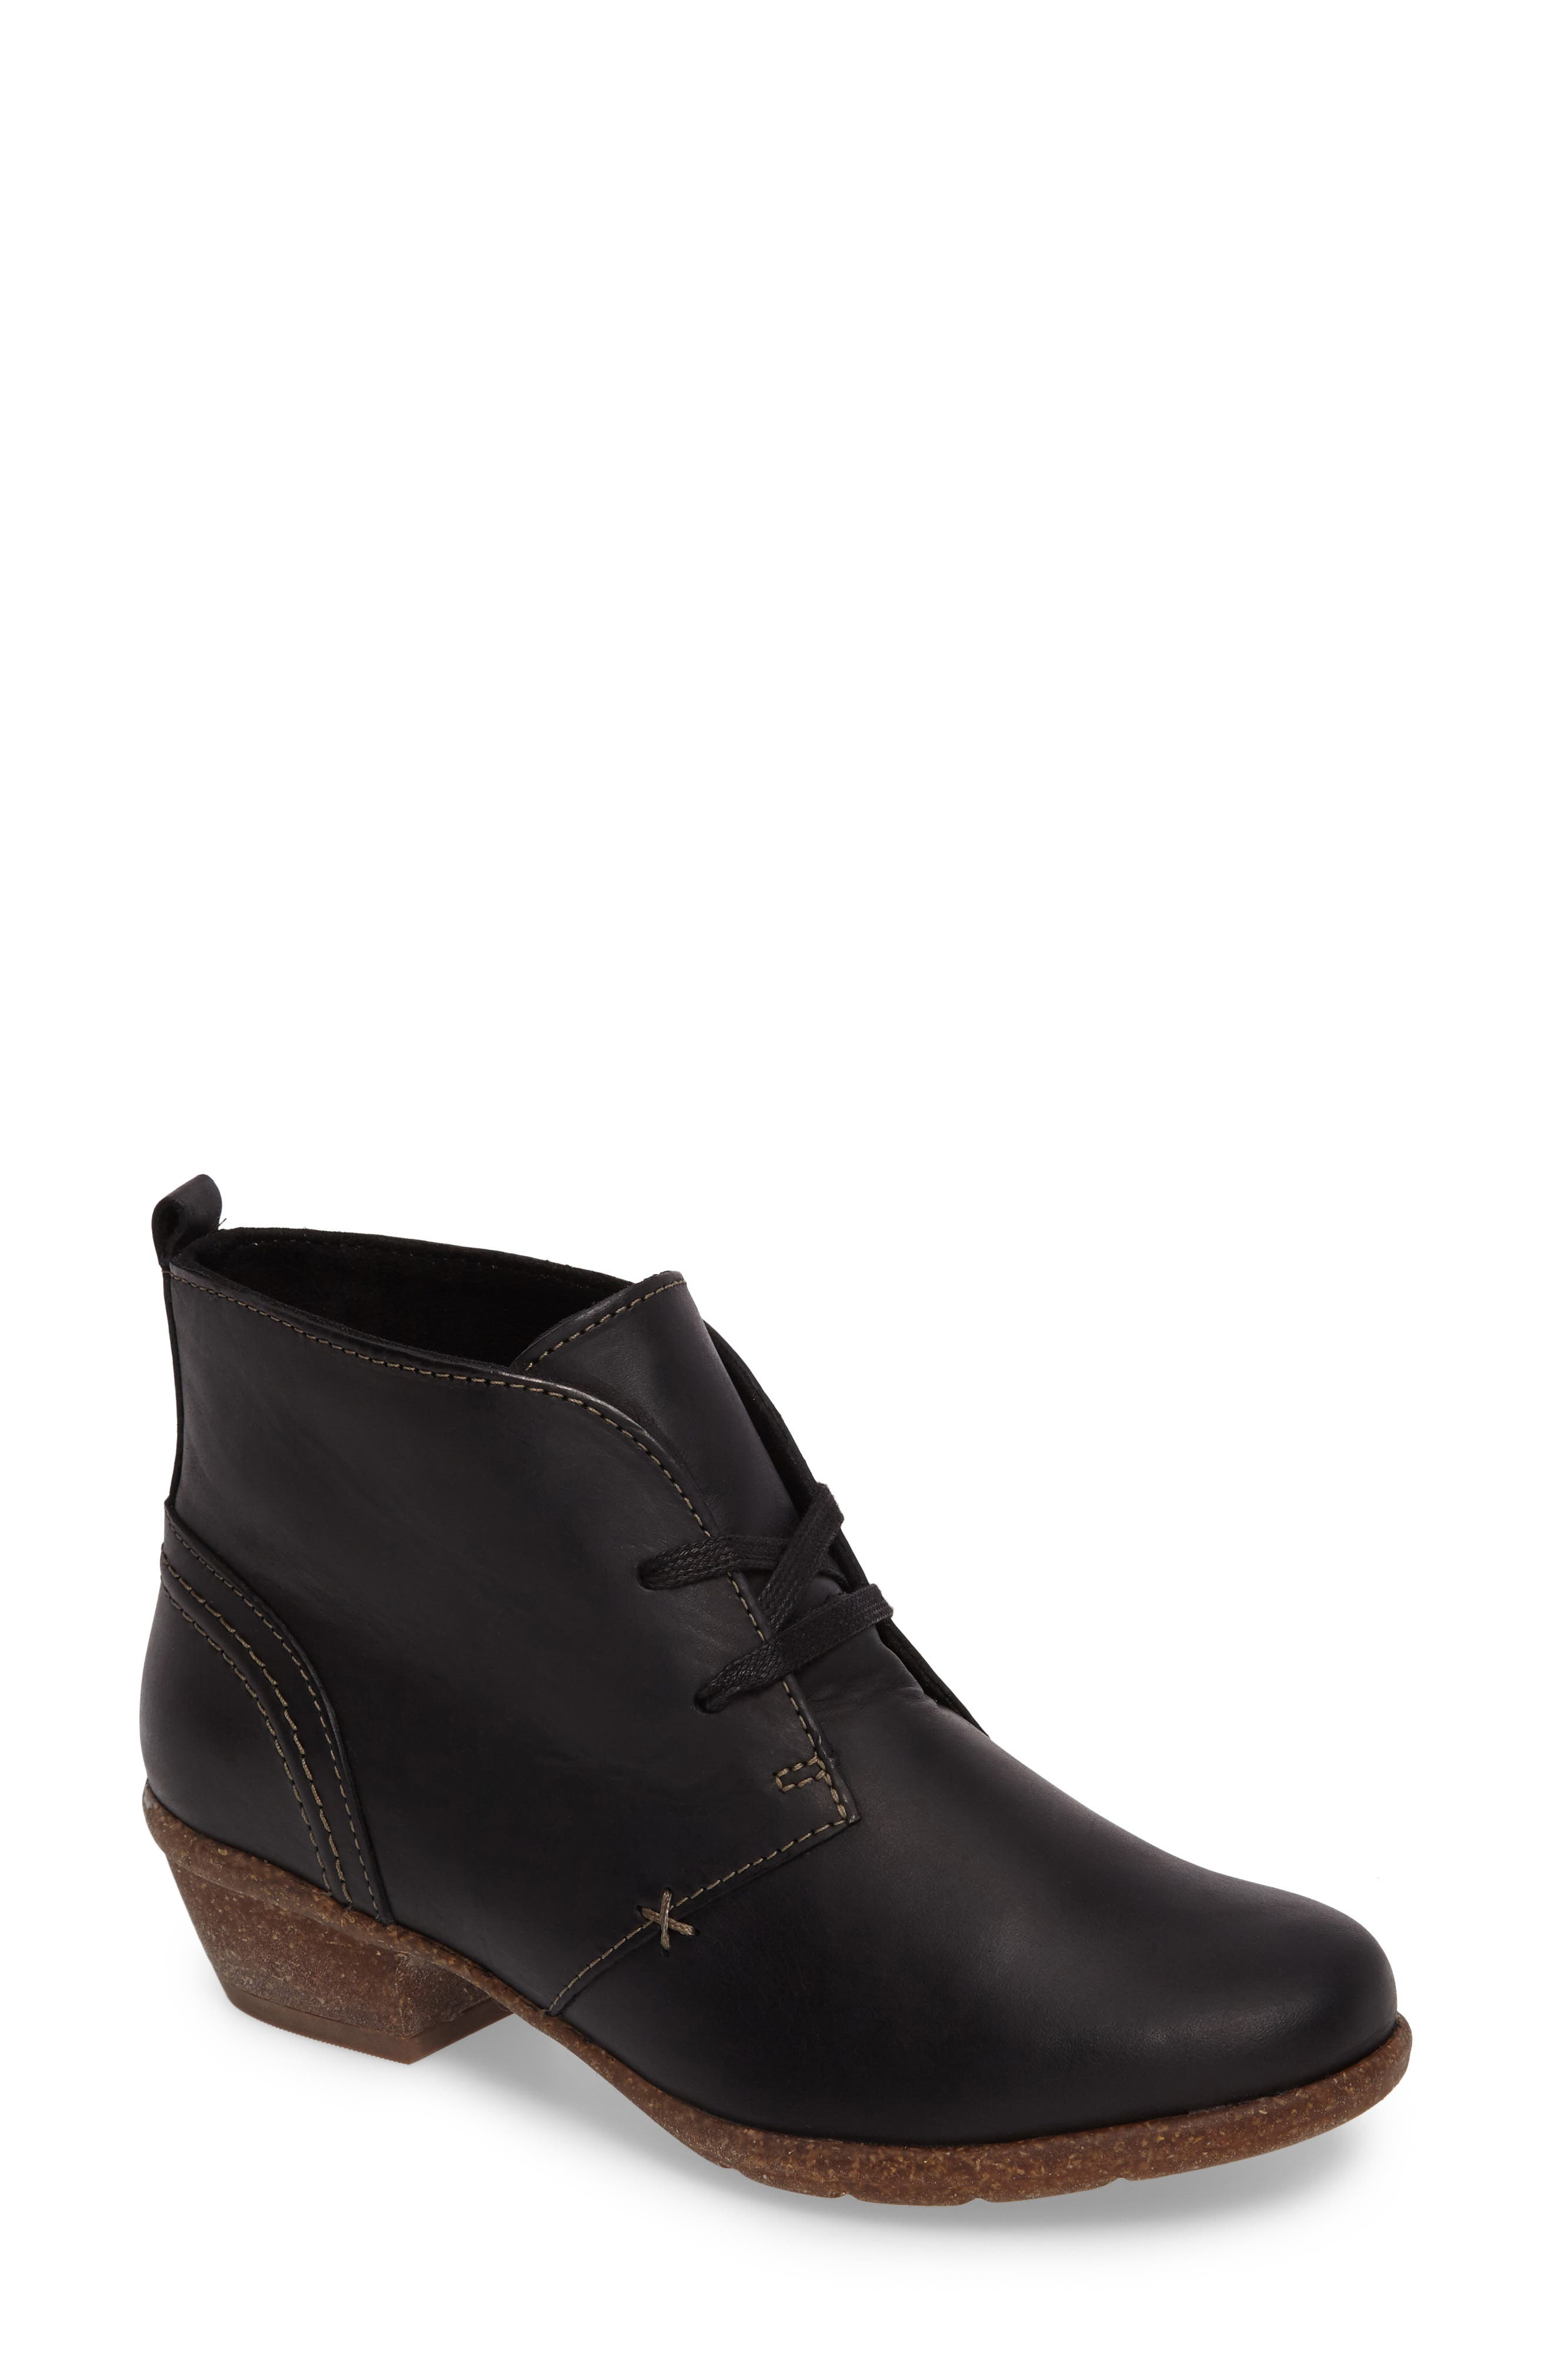 Alternate Image 1 Selected - Clarks® Wilrose Sage Bootie (Women)